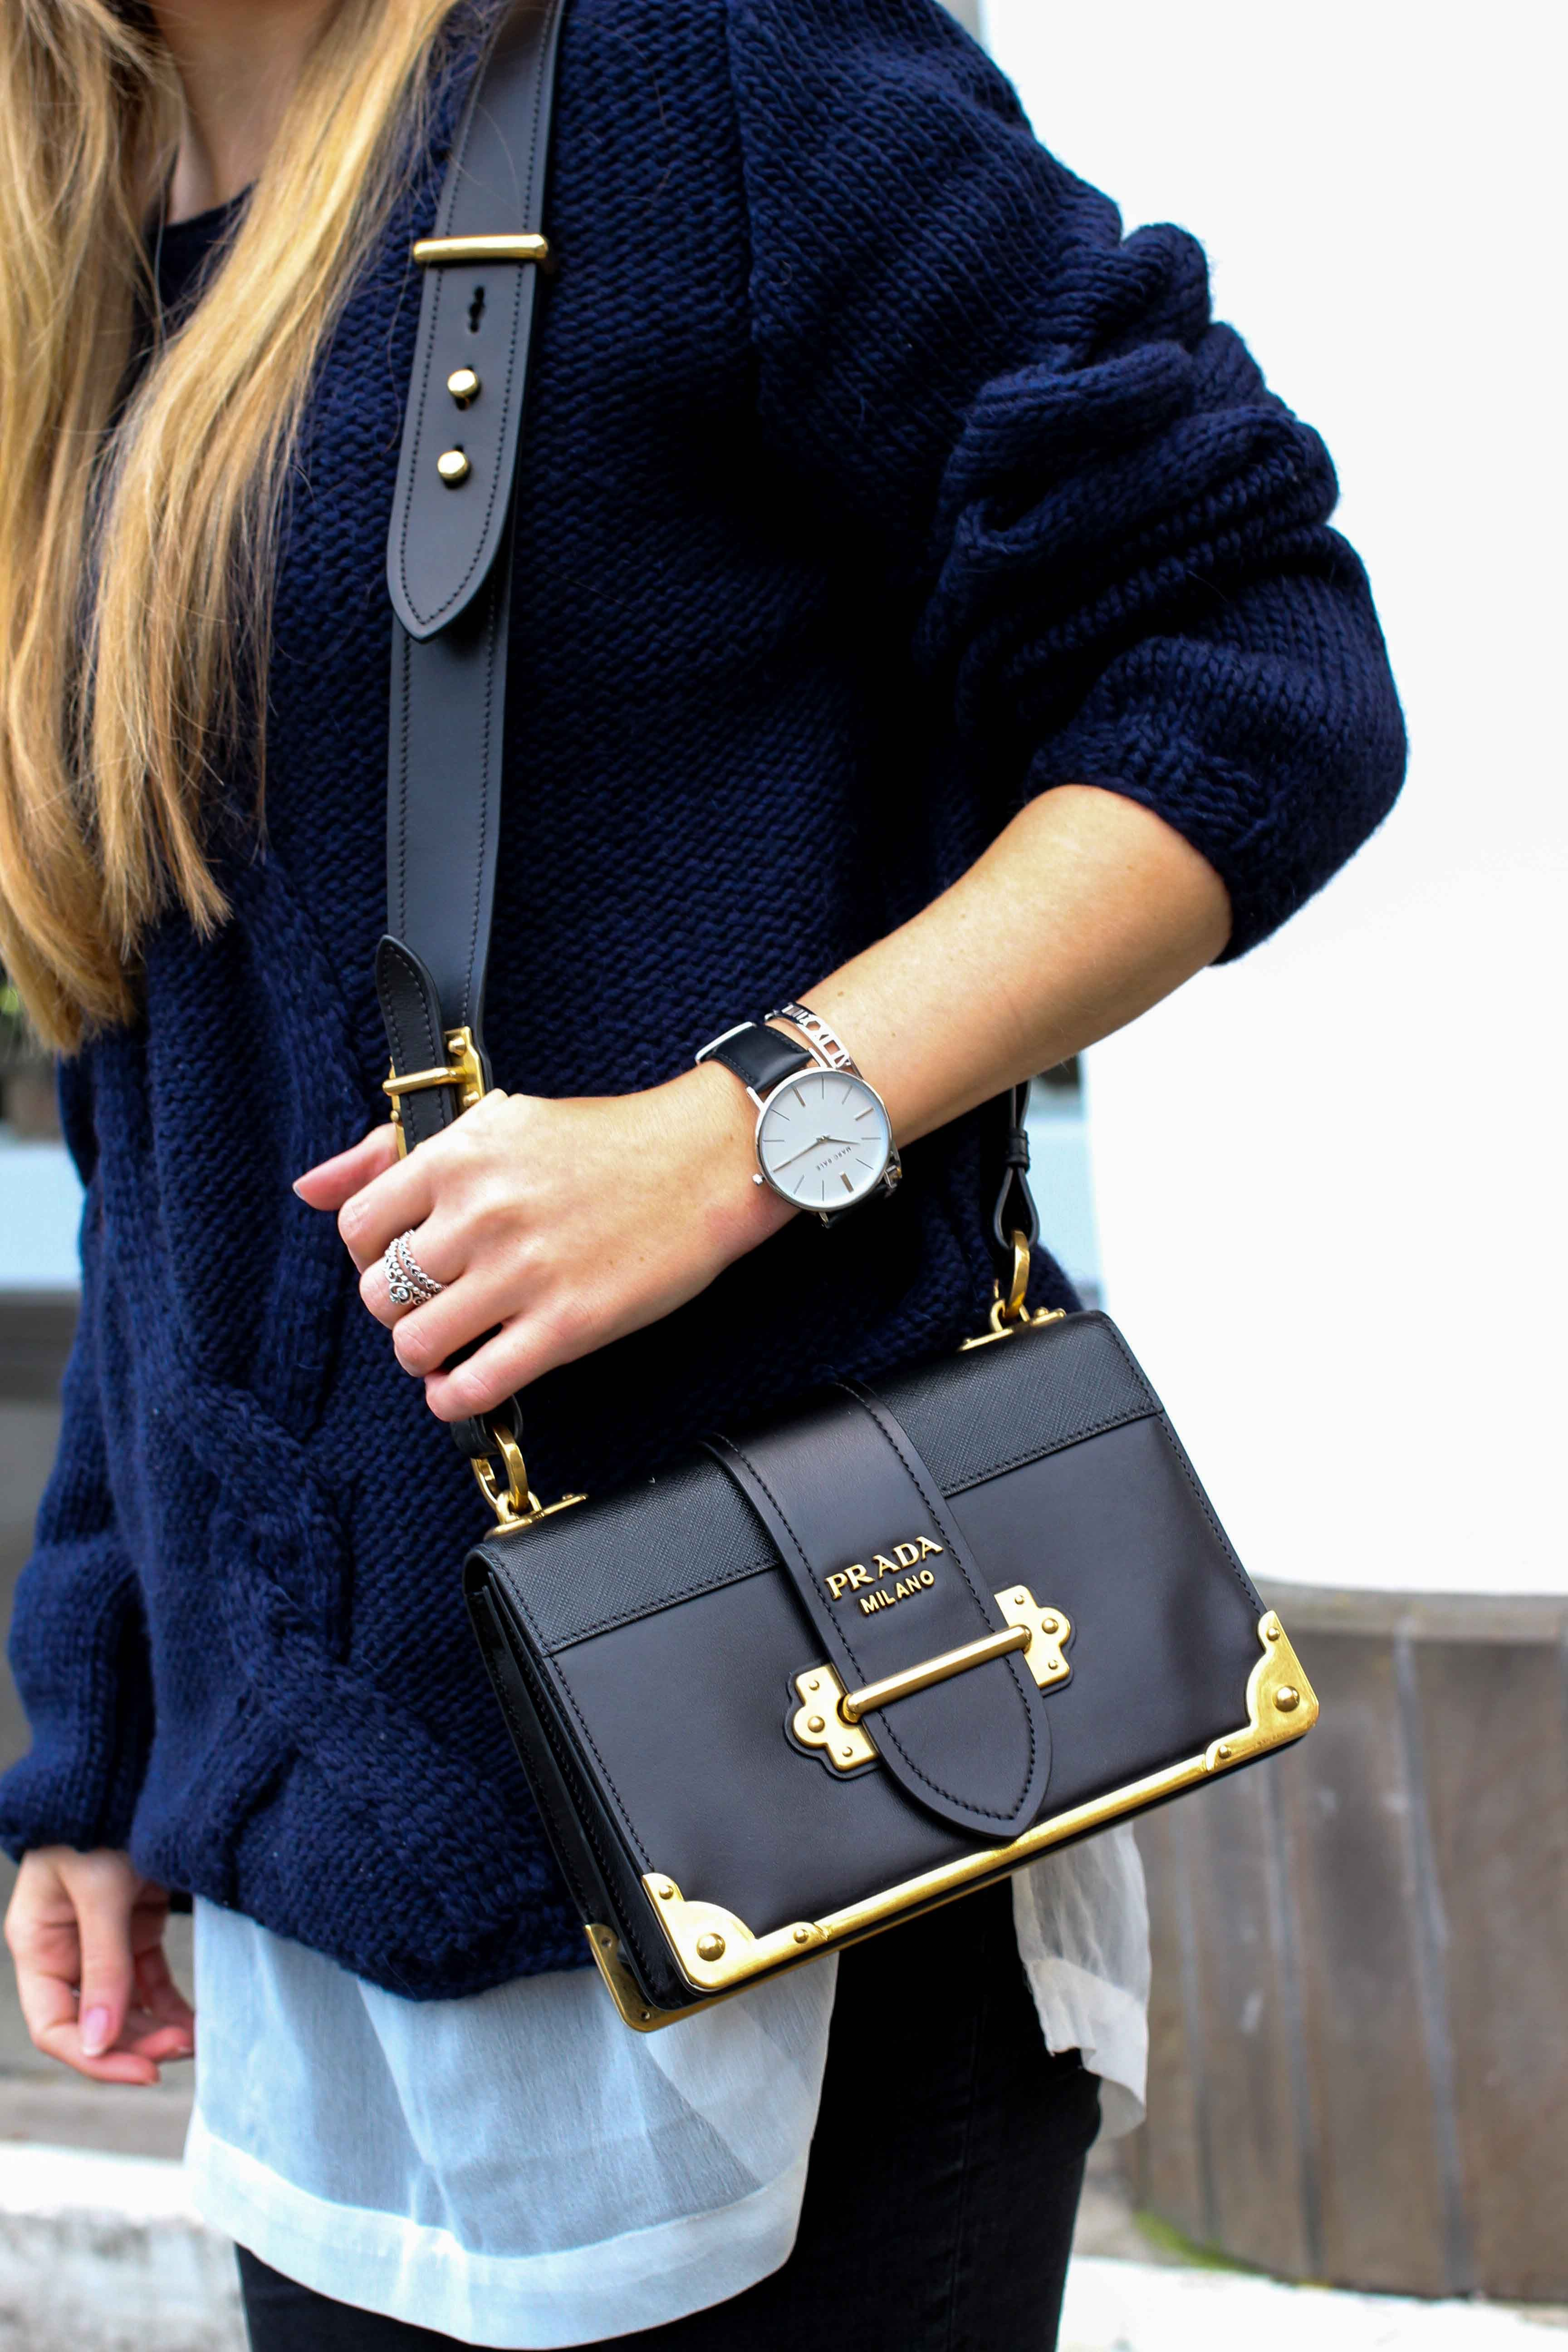 007c70287c7250 Streetstyle Wollpullover mit Cut-Outs Zopfmuster Prada Cahier Bag Outfit  Blog 3